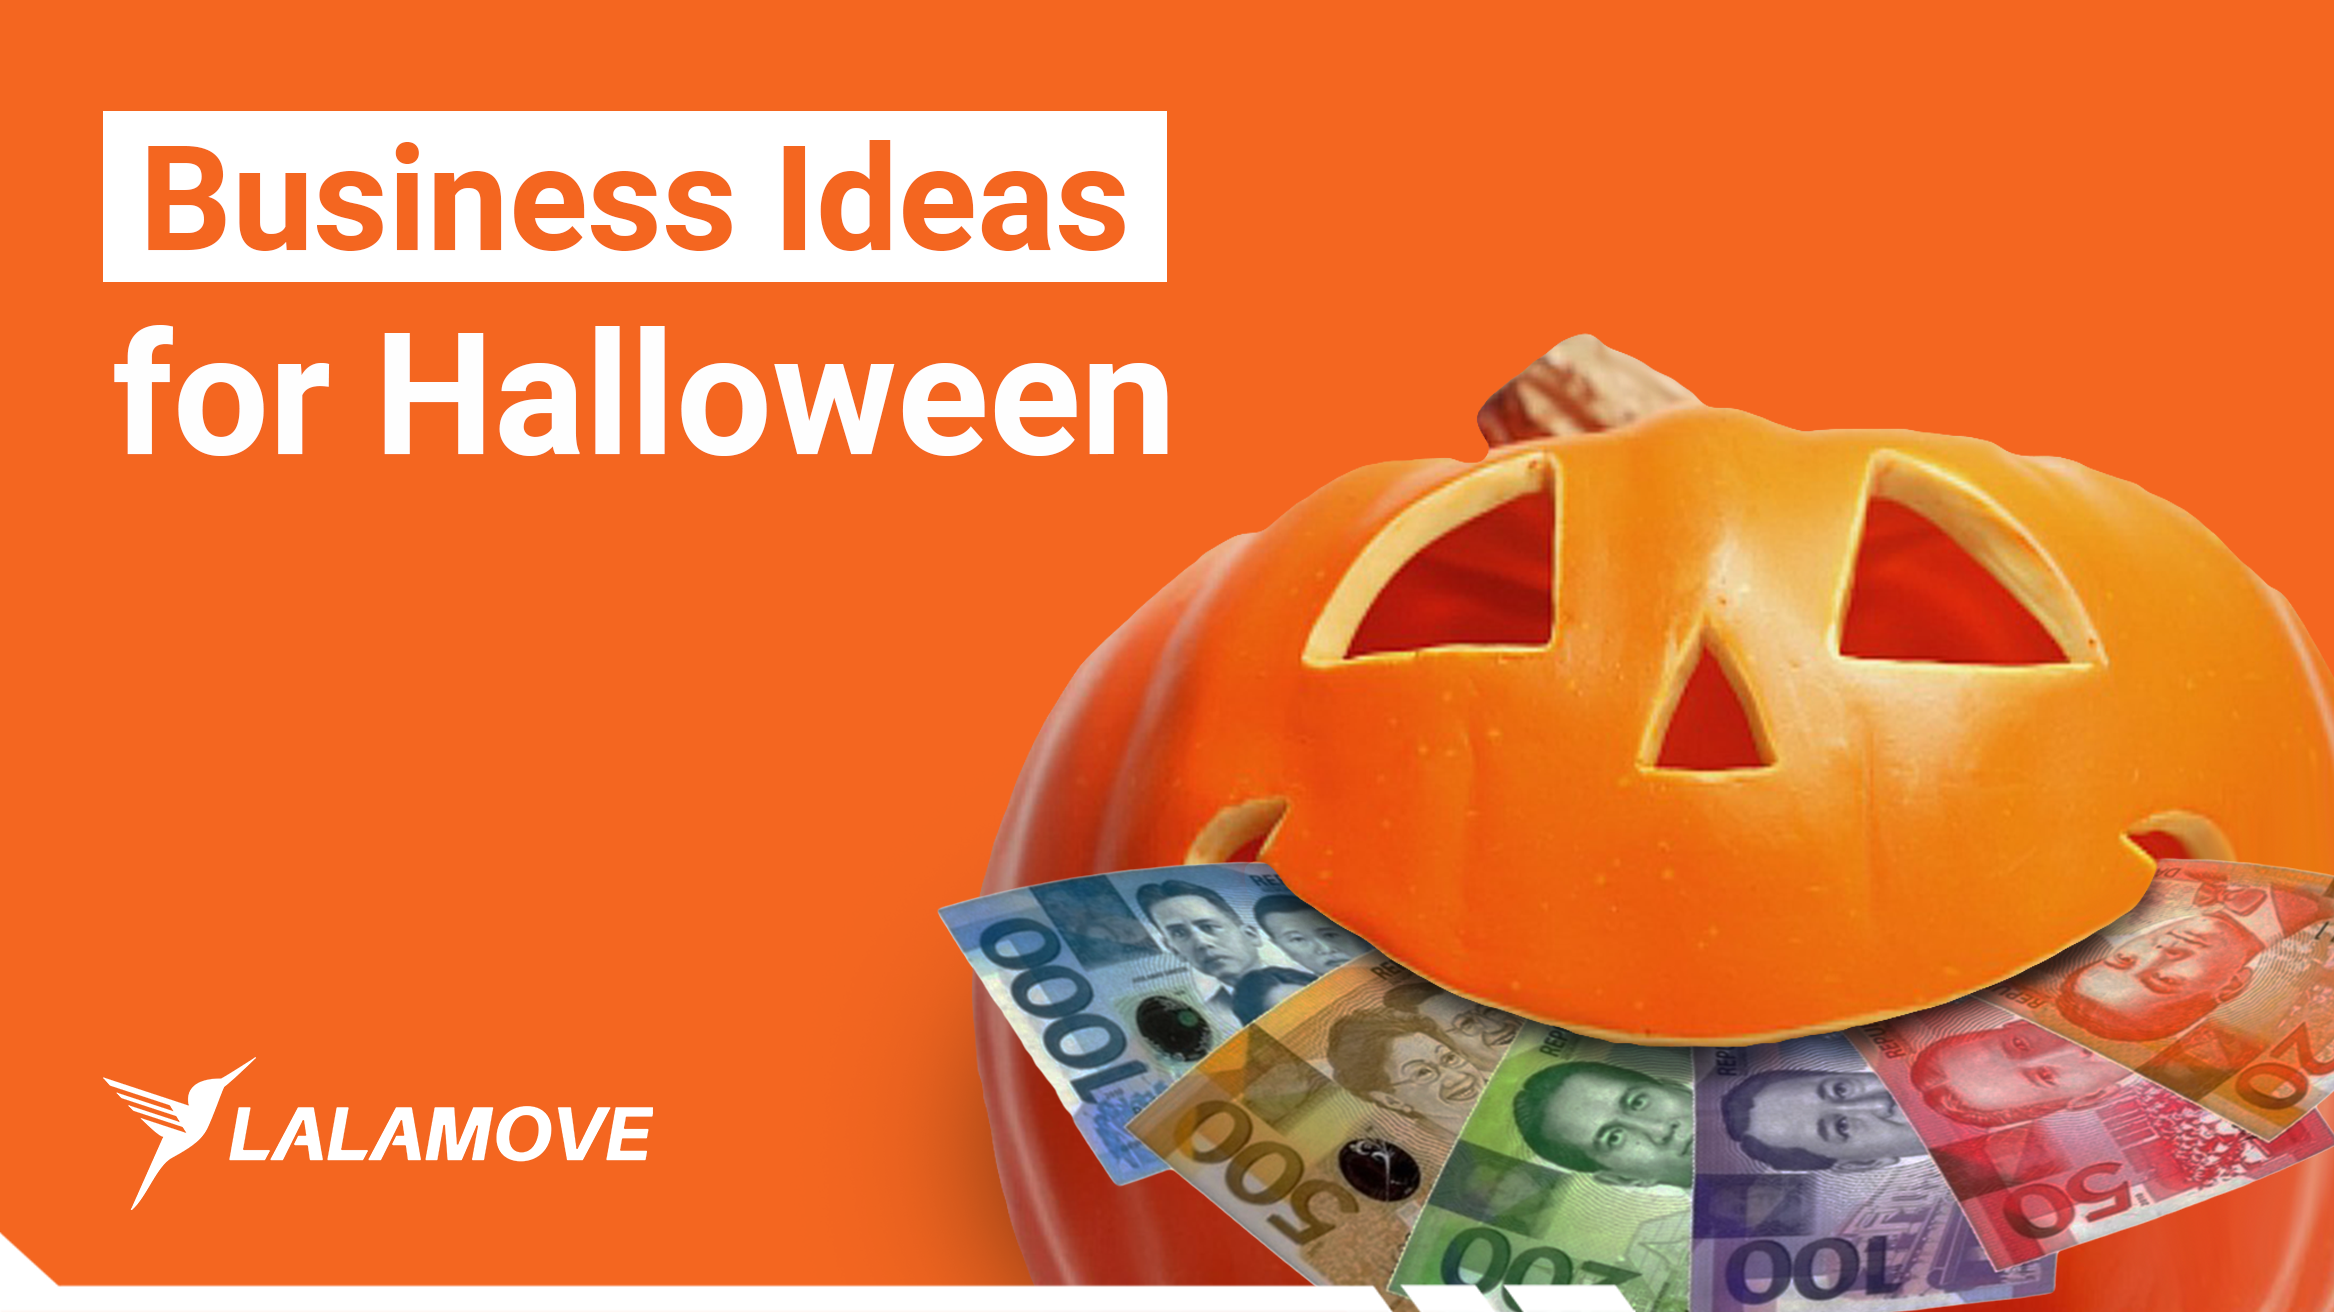 Win This Halloween With These Business Ideas